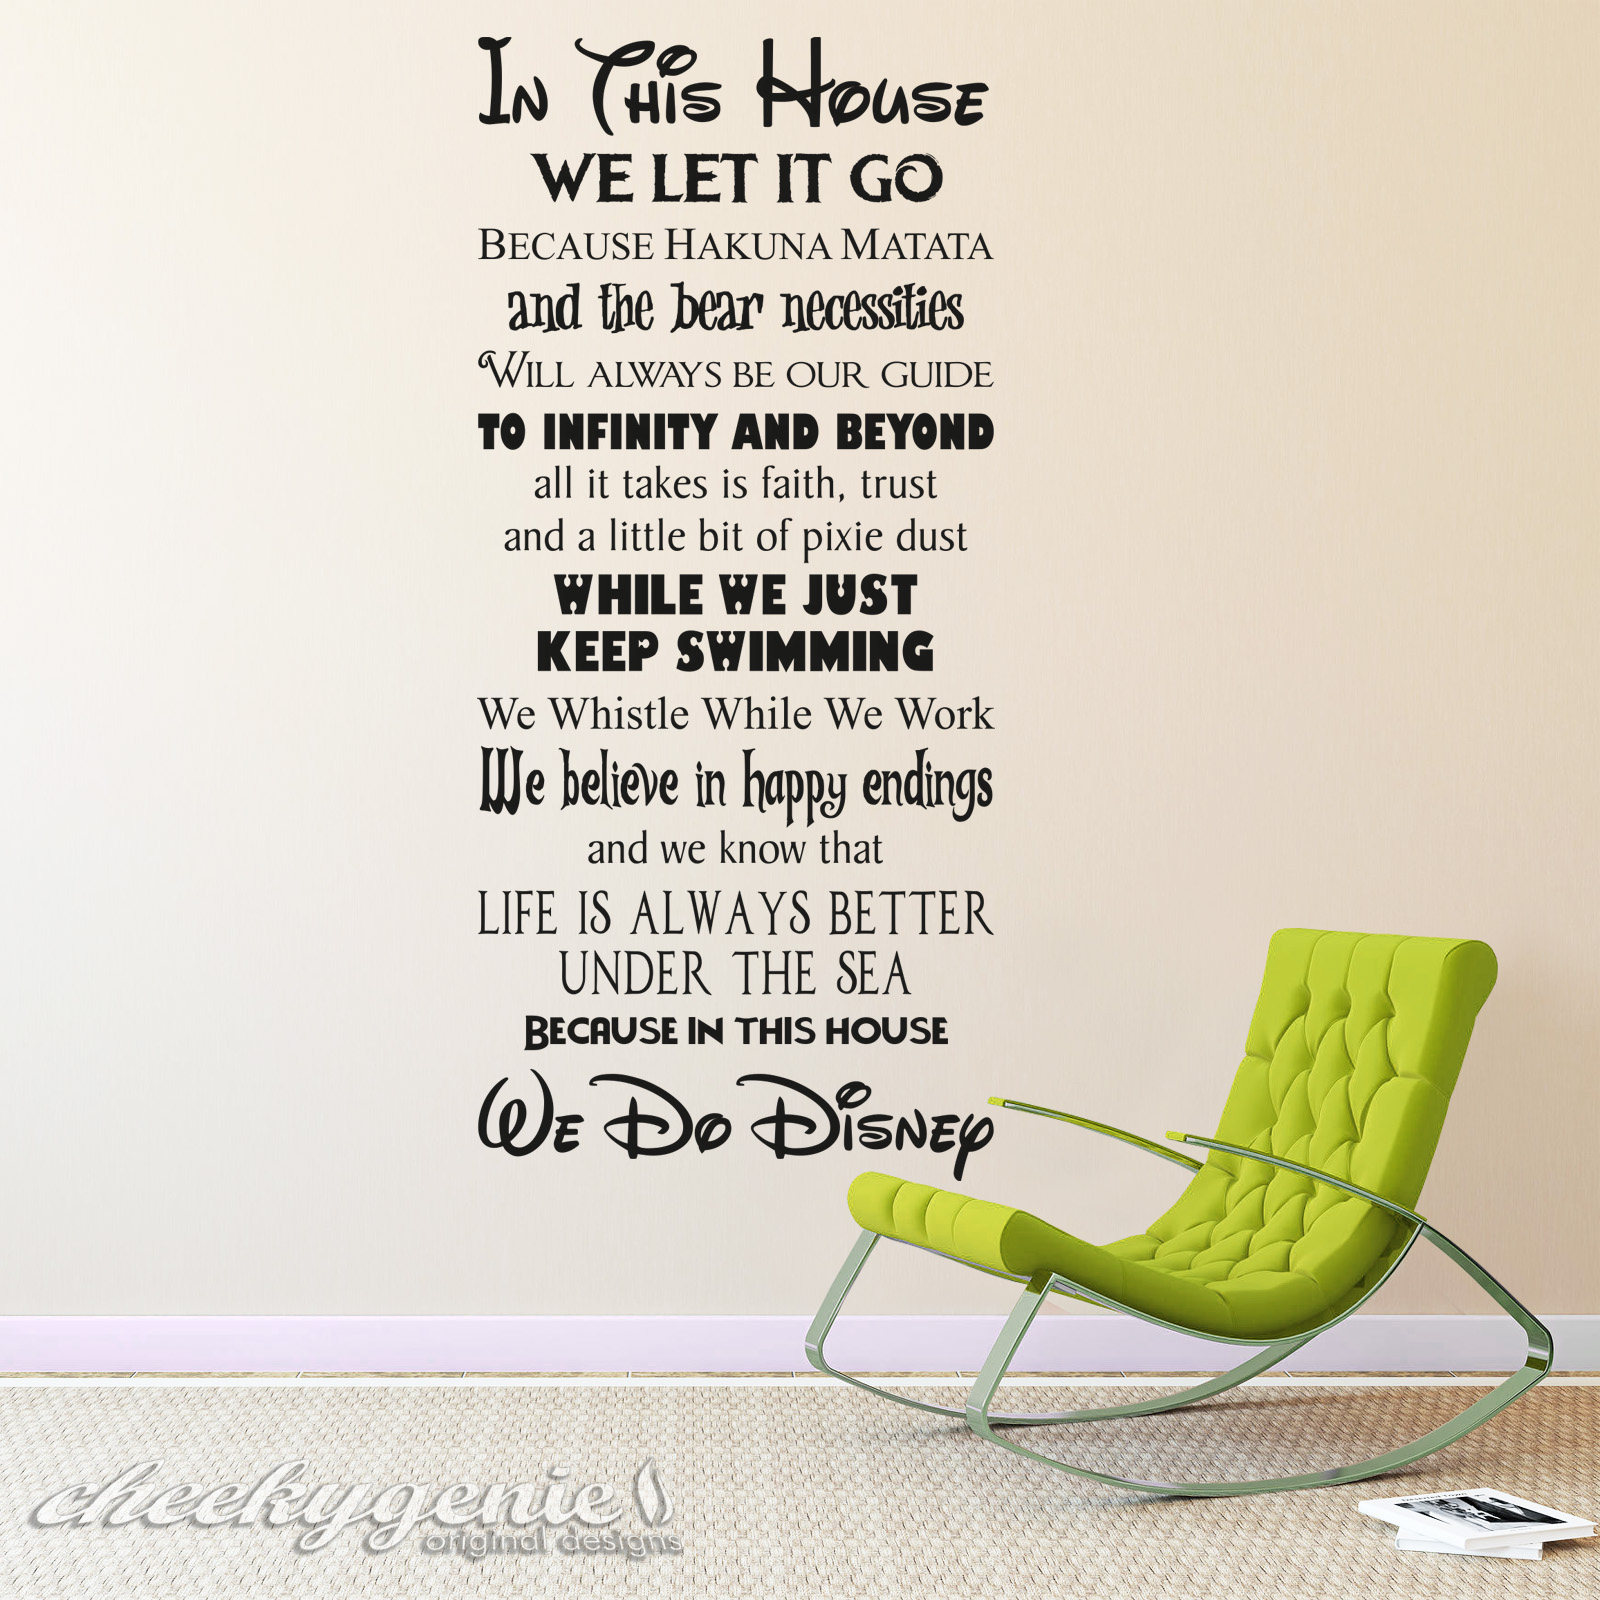 Wall Art Quotes Disney : In this house we do disney style quote rules vinyl wall